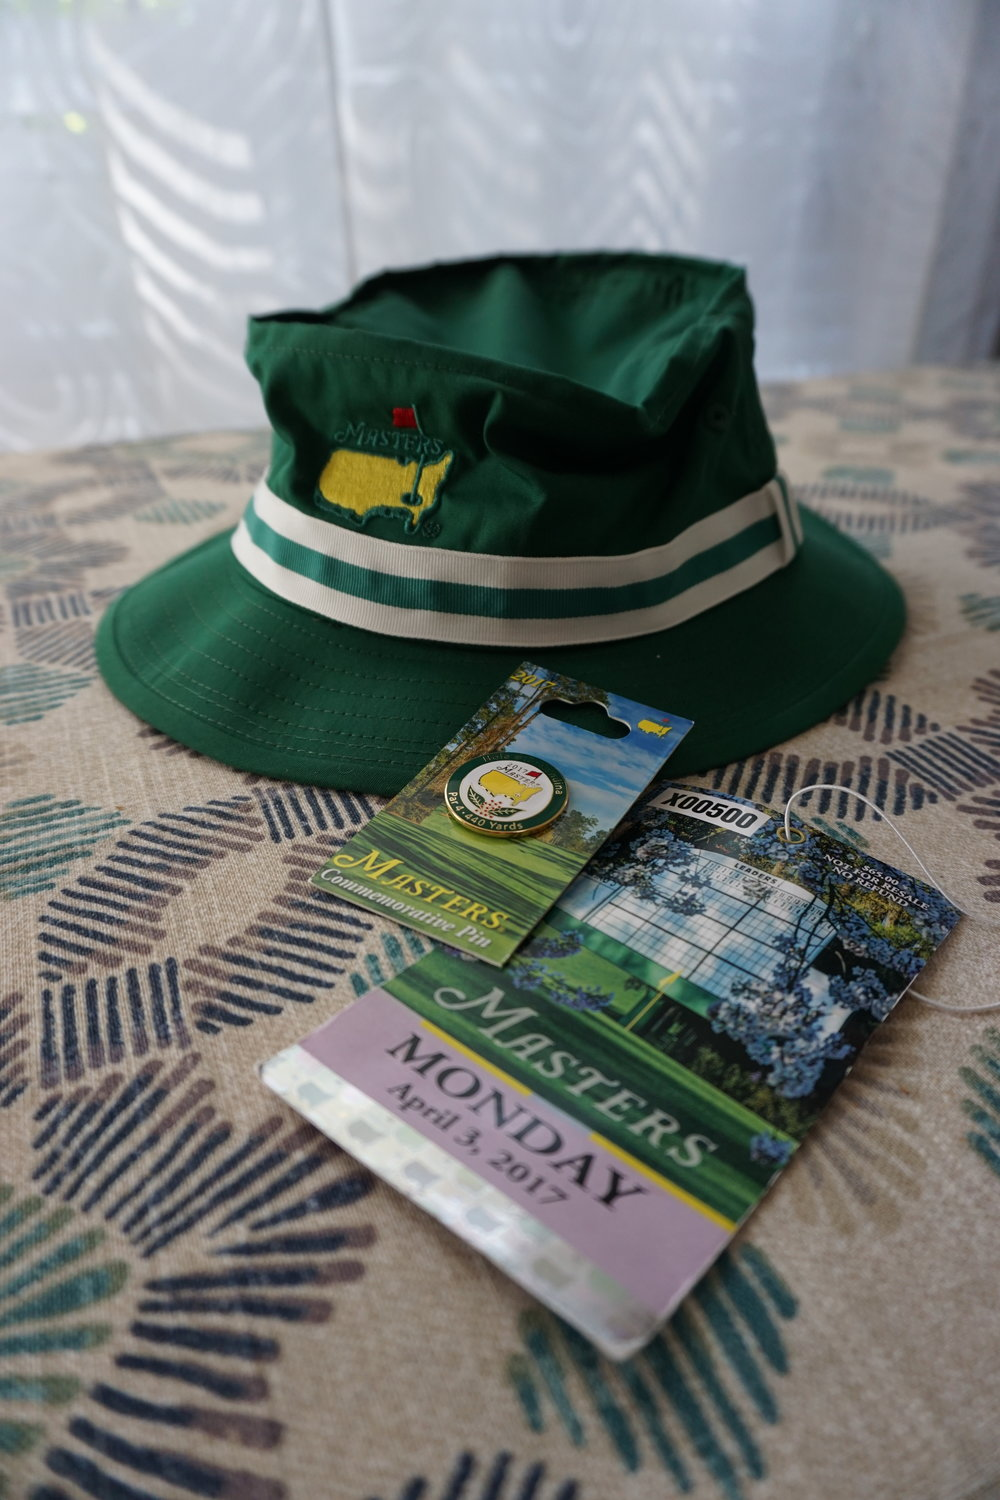 Masters 2017 bucket hat and pin